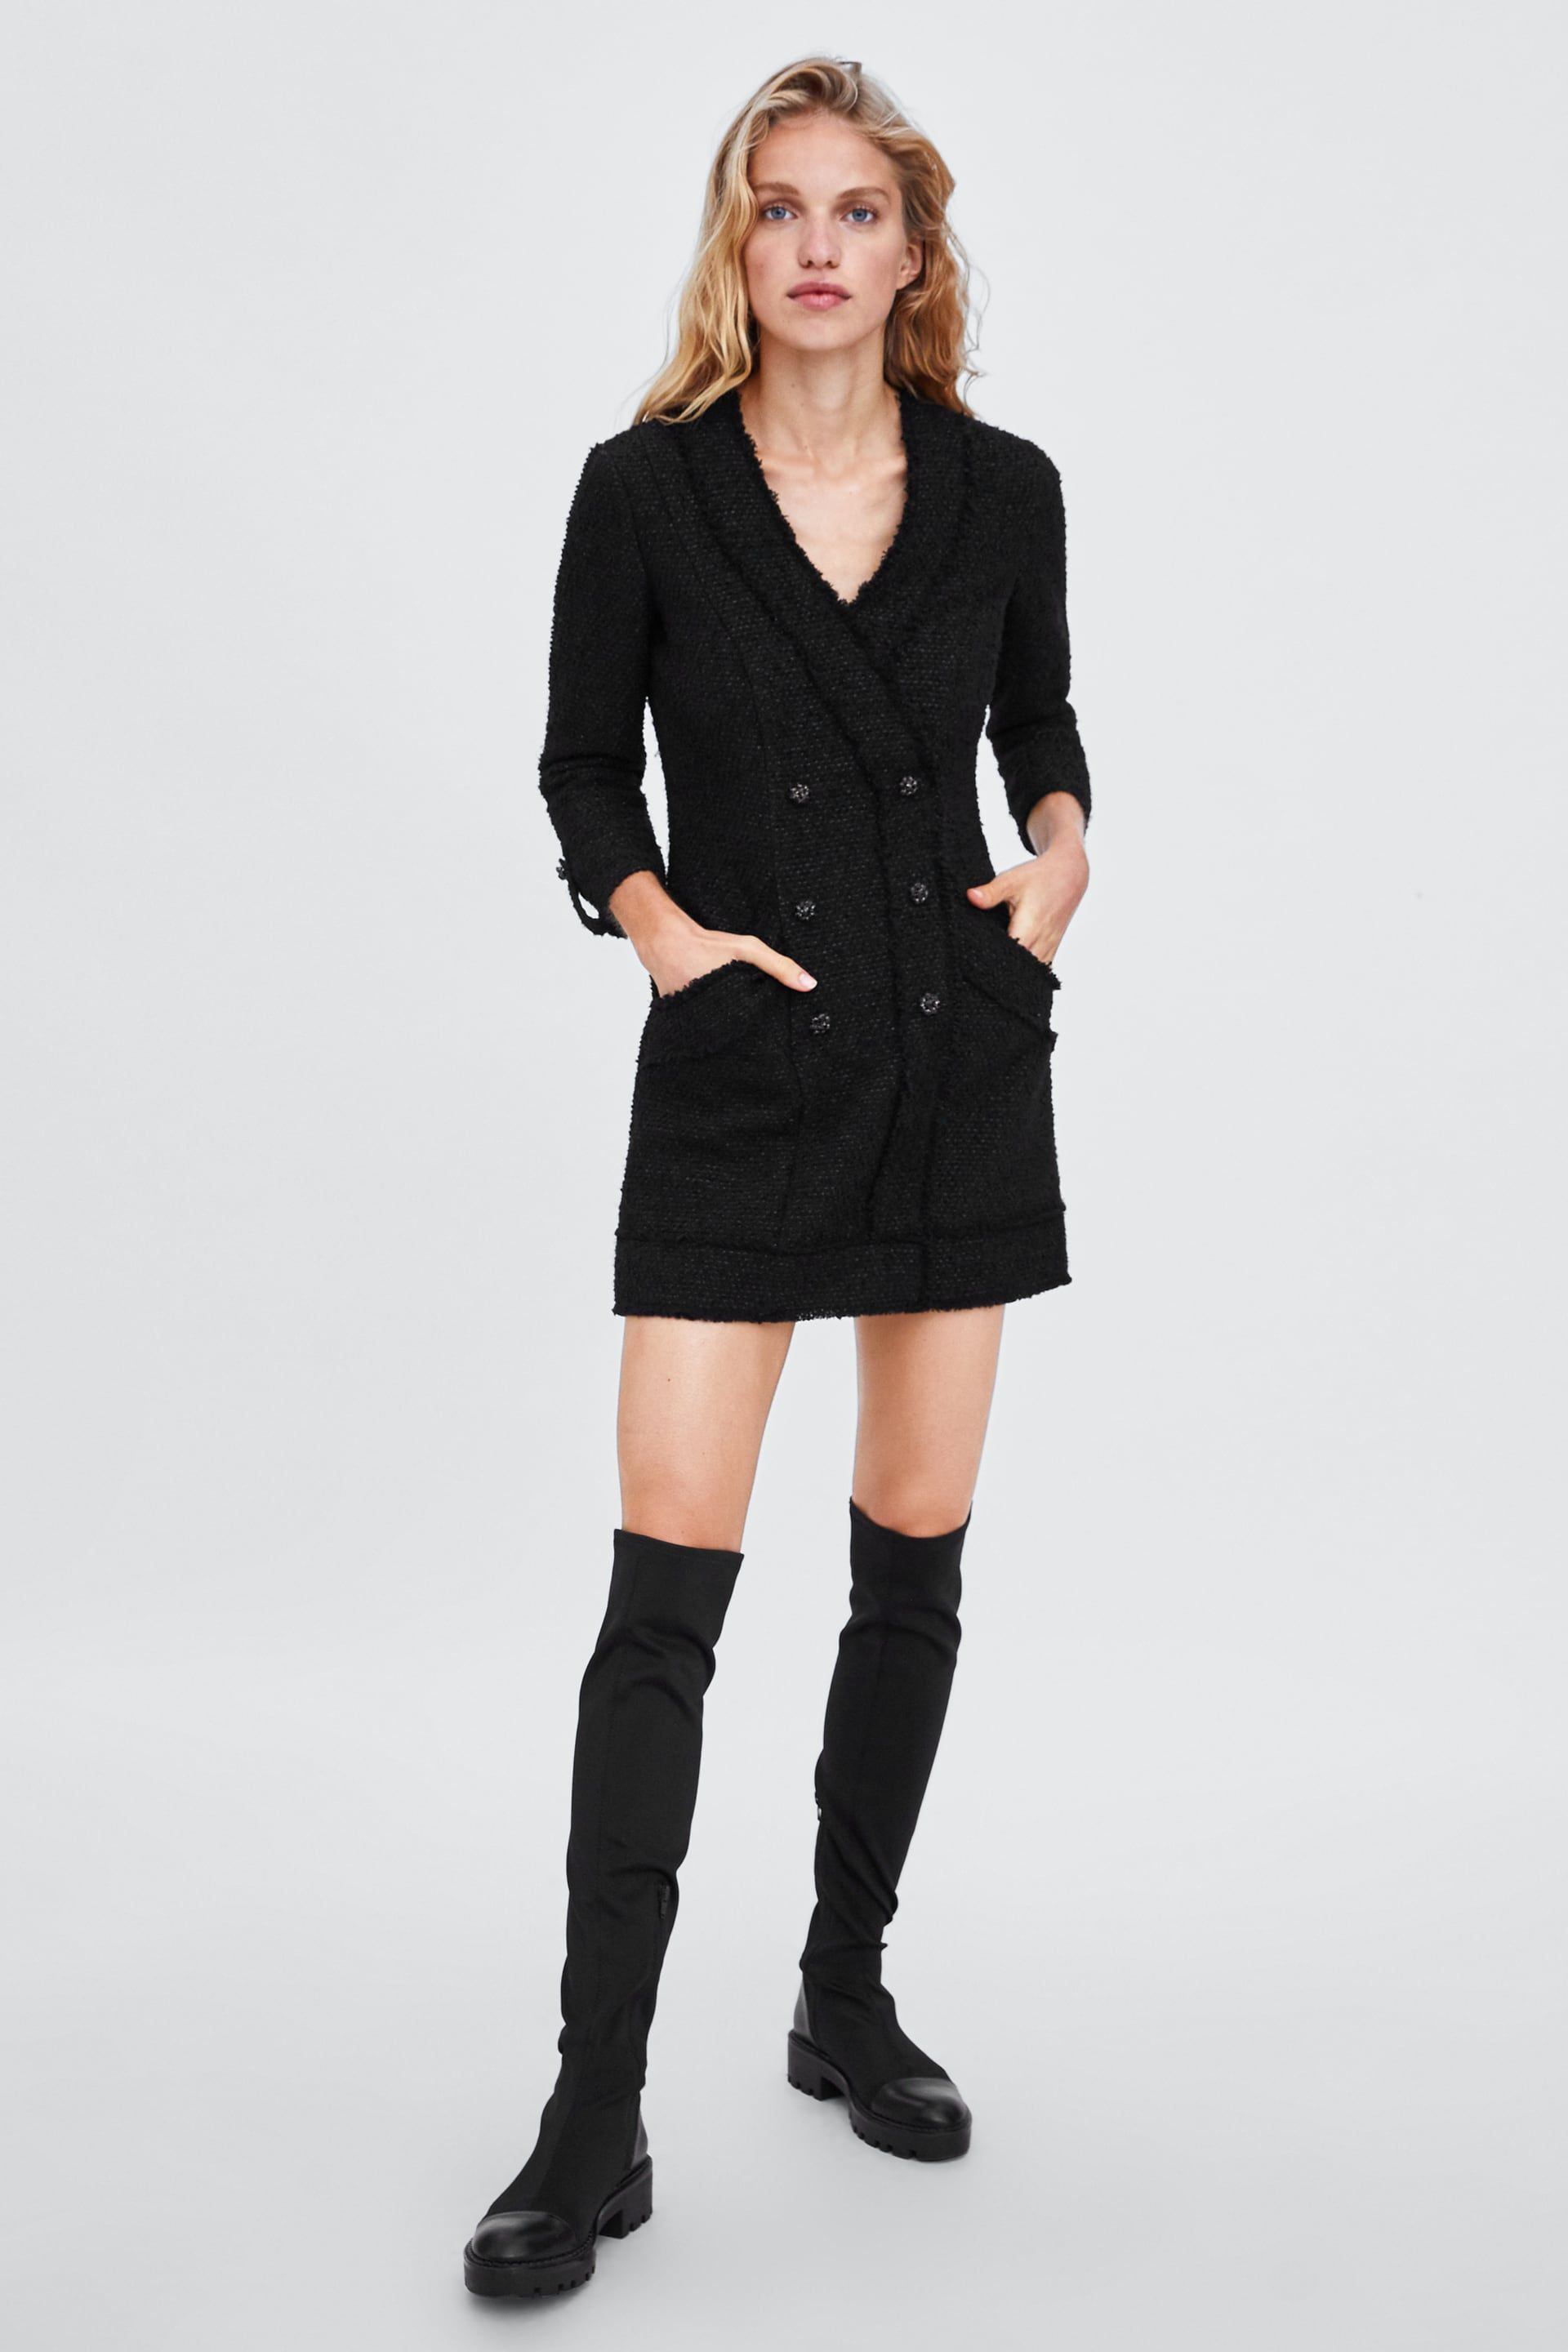 f00885446f2a Image 1 of TWEED BLAZER DRESS from Zara | Work Clothes in 2019 ...